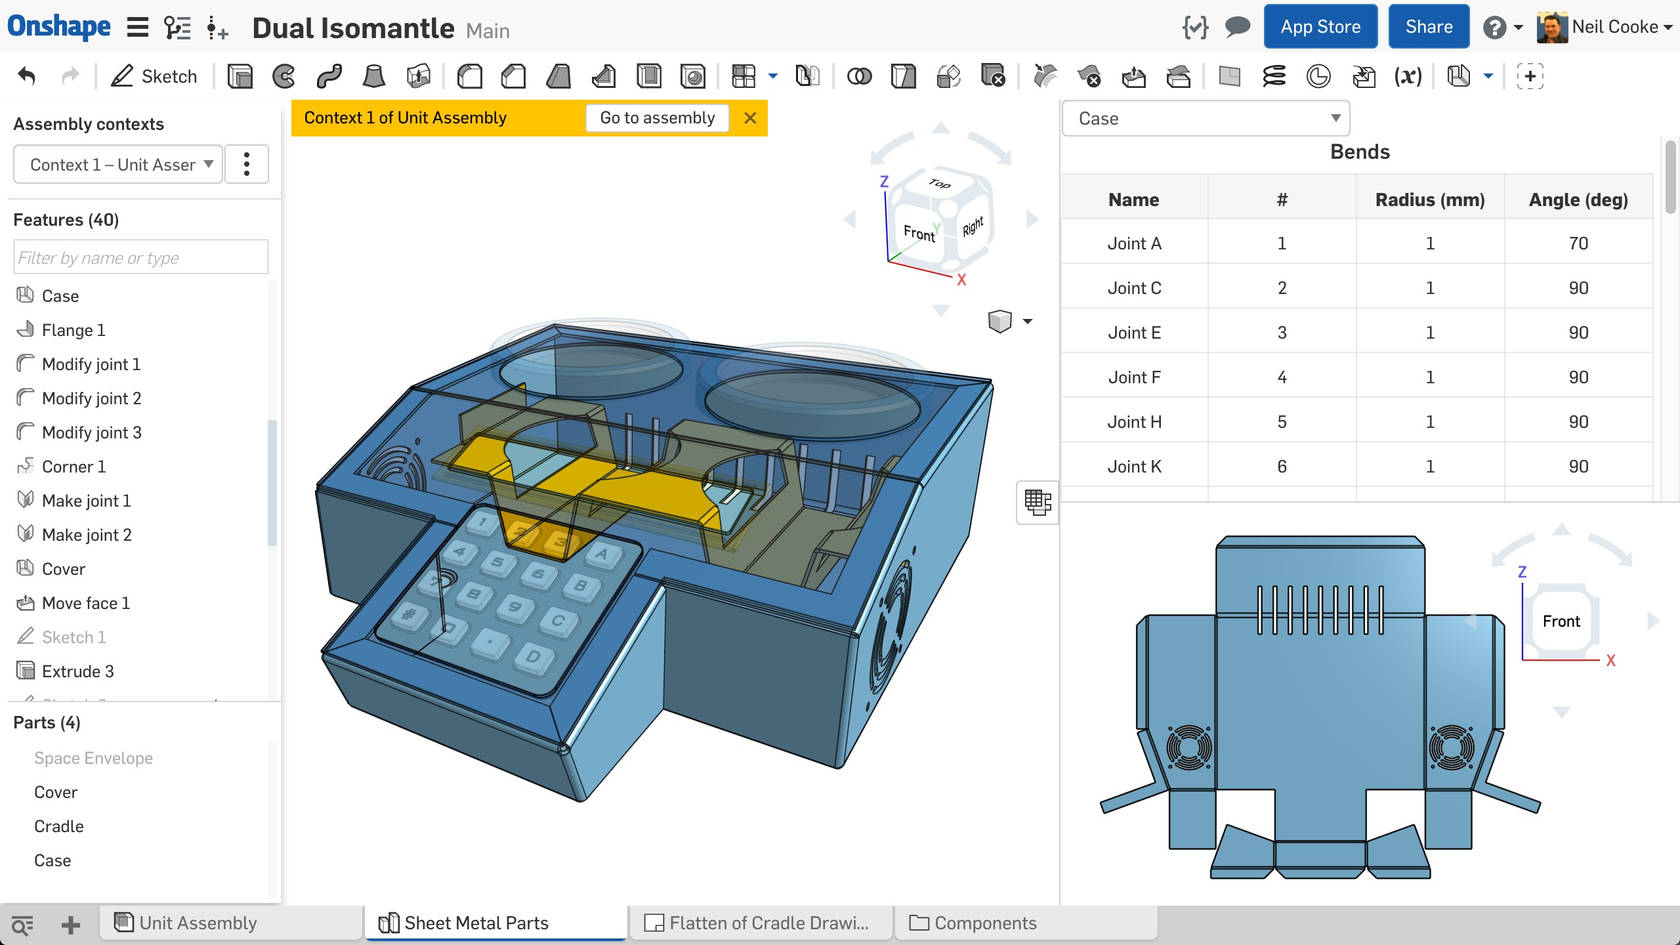 Onshape sheet metal